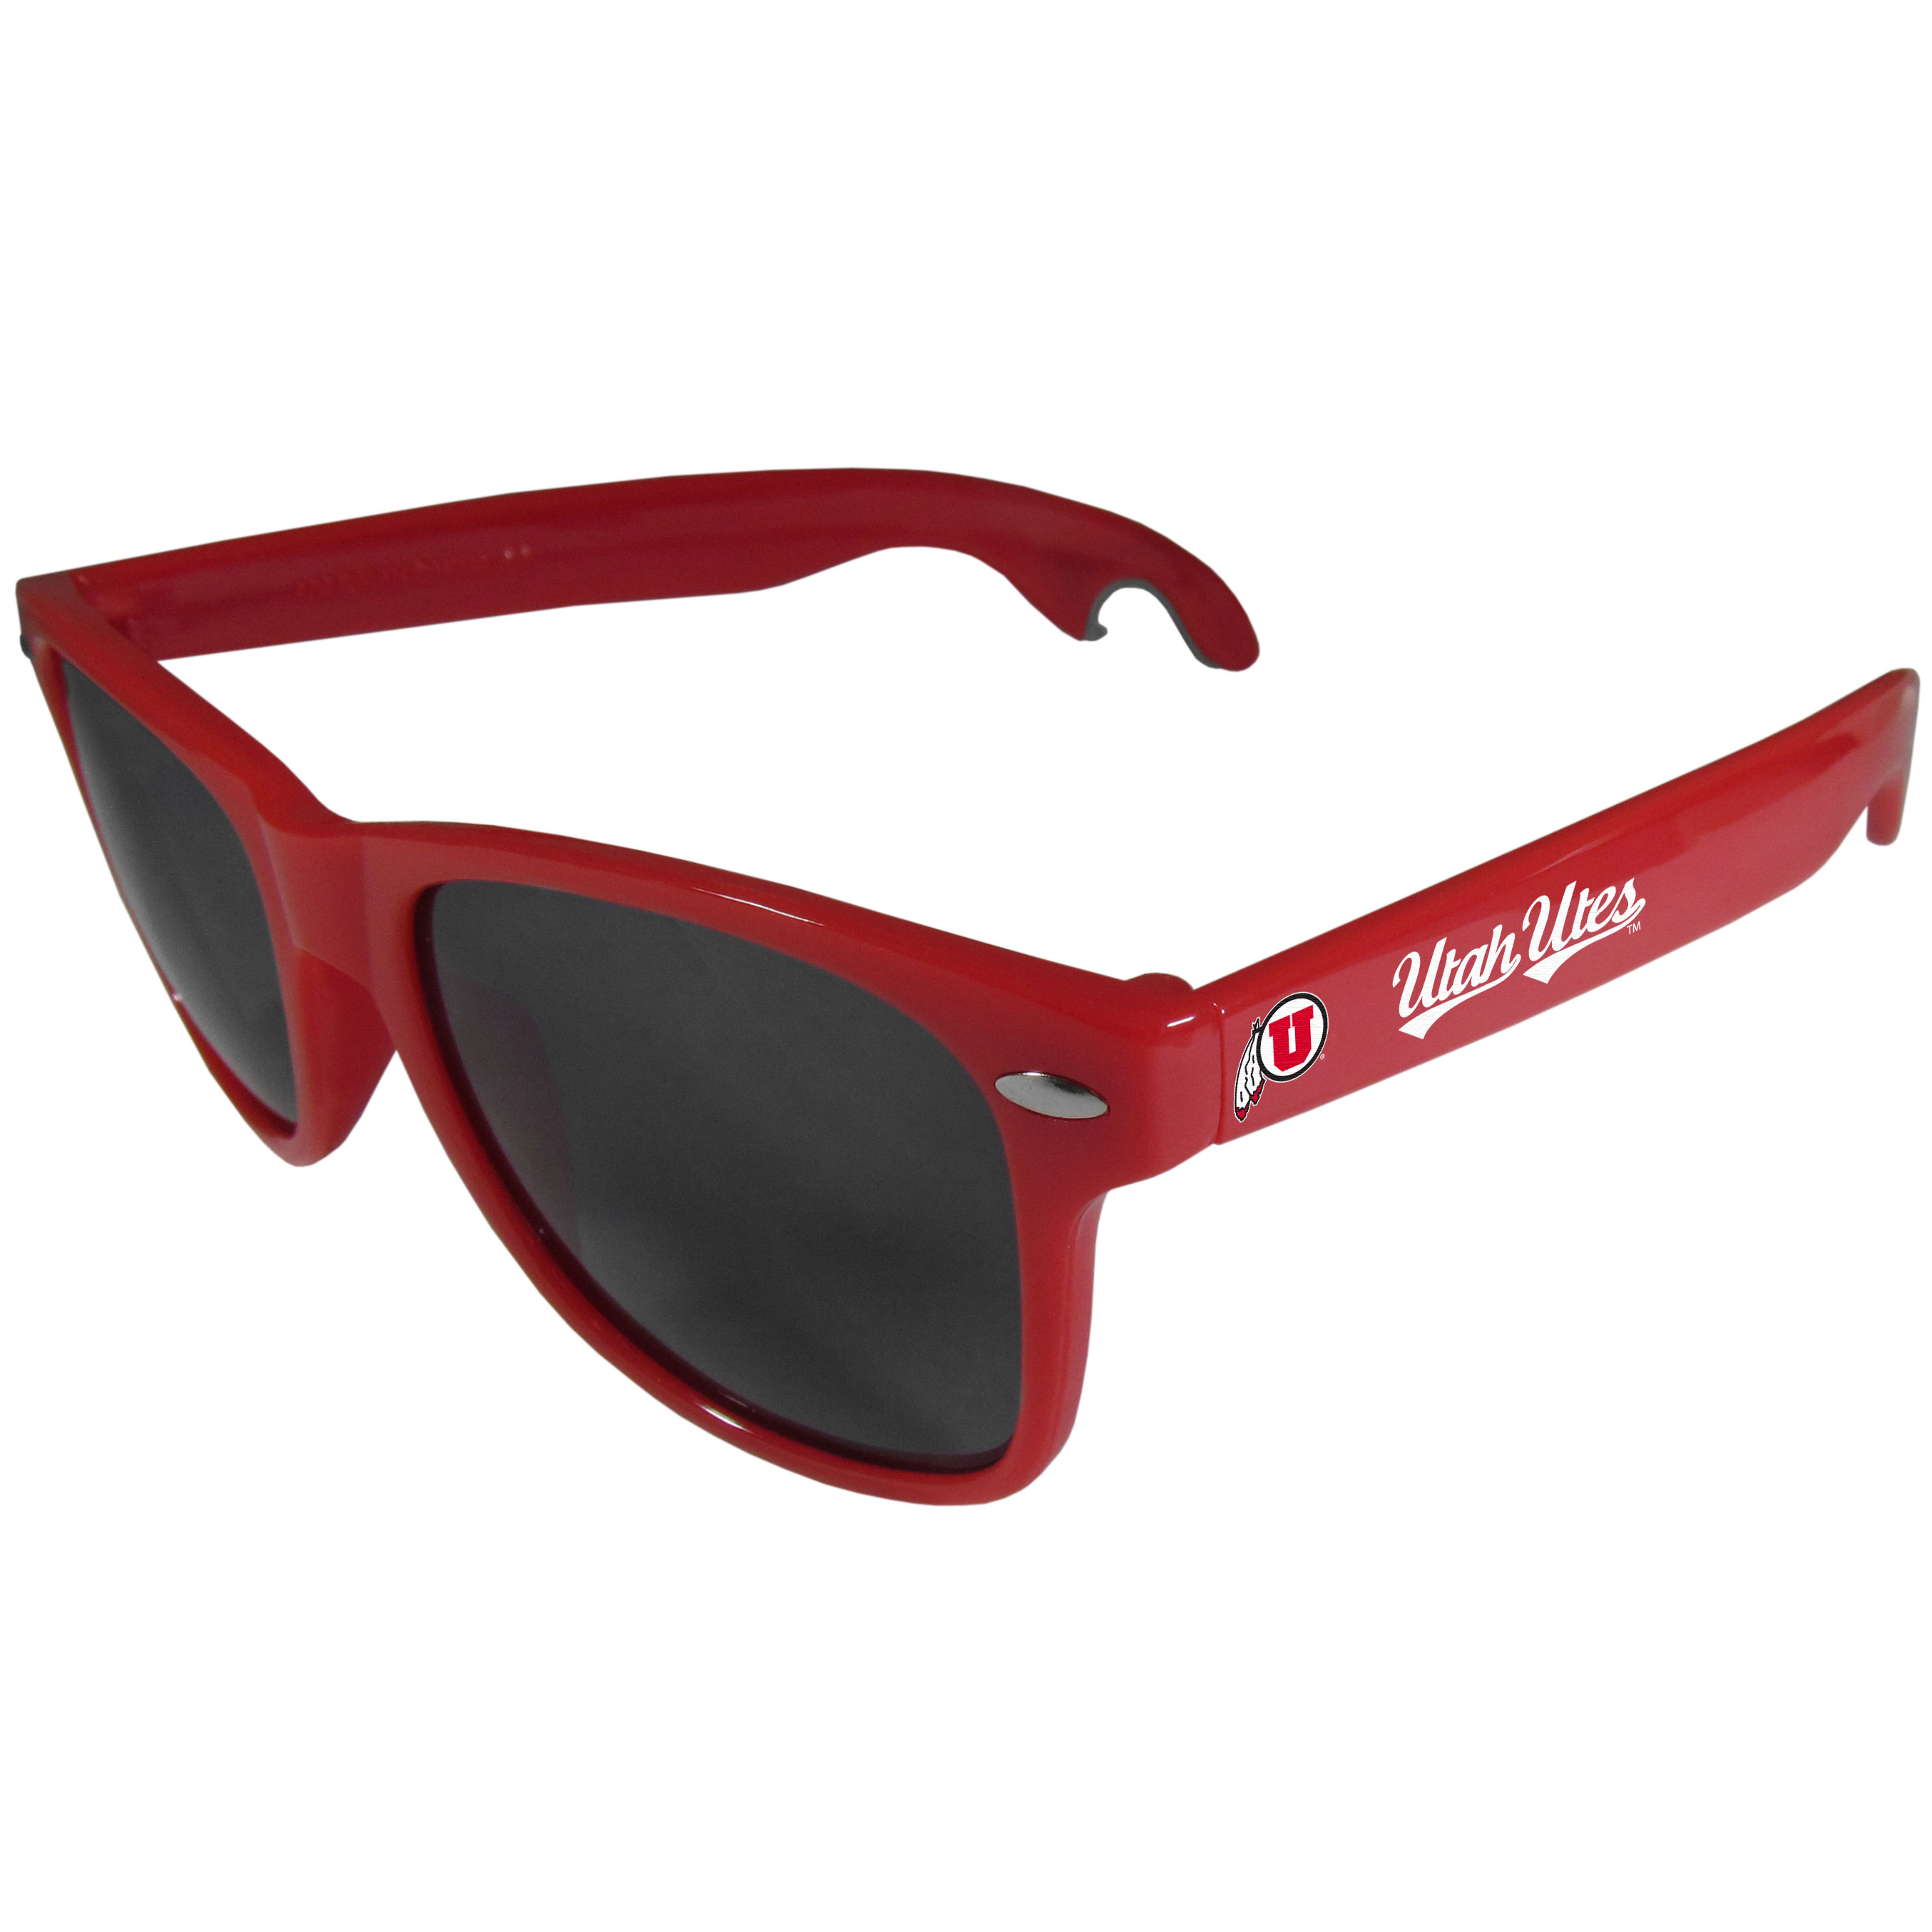 Utah Utes Beachfarer Bottle Opener Sunglasses, Red - Seriously, these sunglasses open bottles! Keep the party going with these amazing Utah Utes bottle opener sunglasses. The stylish retro frames feature team designs on the arms and functional bottle openers on the end of the arms. Whether you are at the beach or having a backyard BBQ on game day, these shades will keep your eyes protected with 100% UVA/UVB protection and keep you hydrated with the handy bottle opener arms.